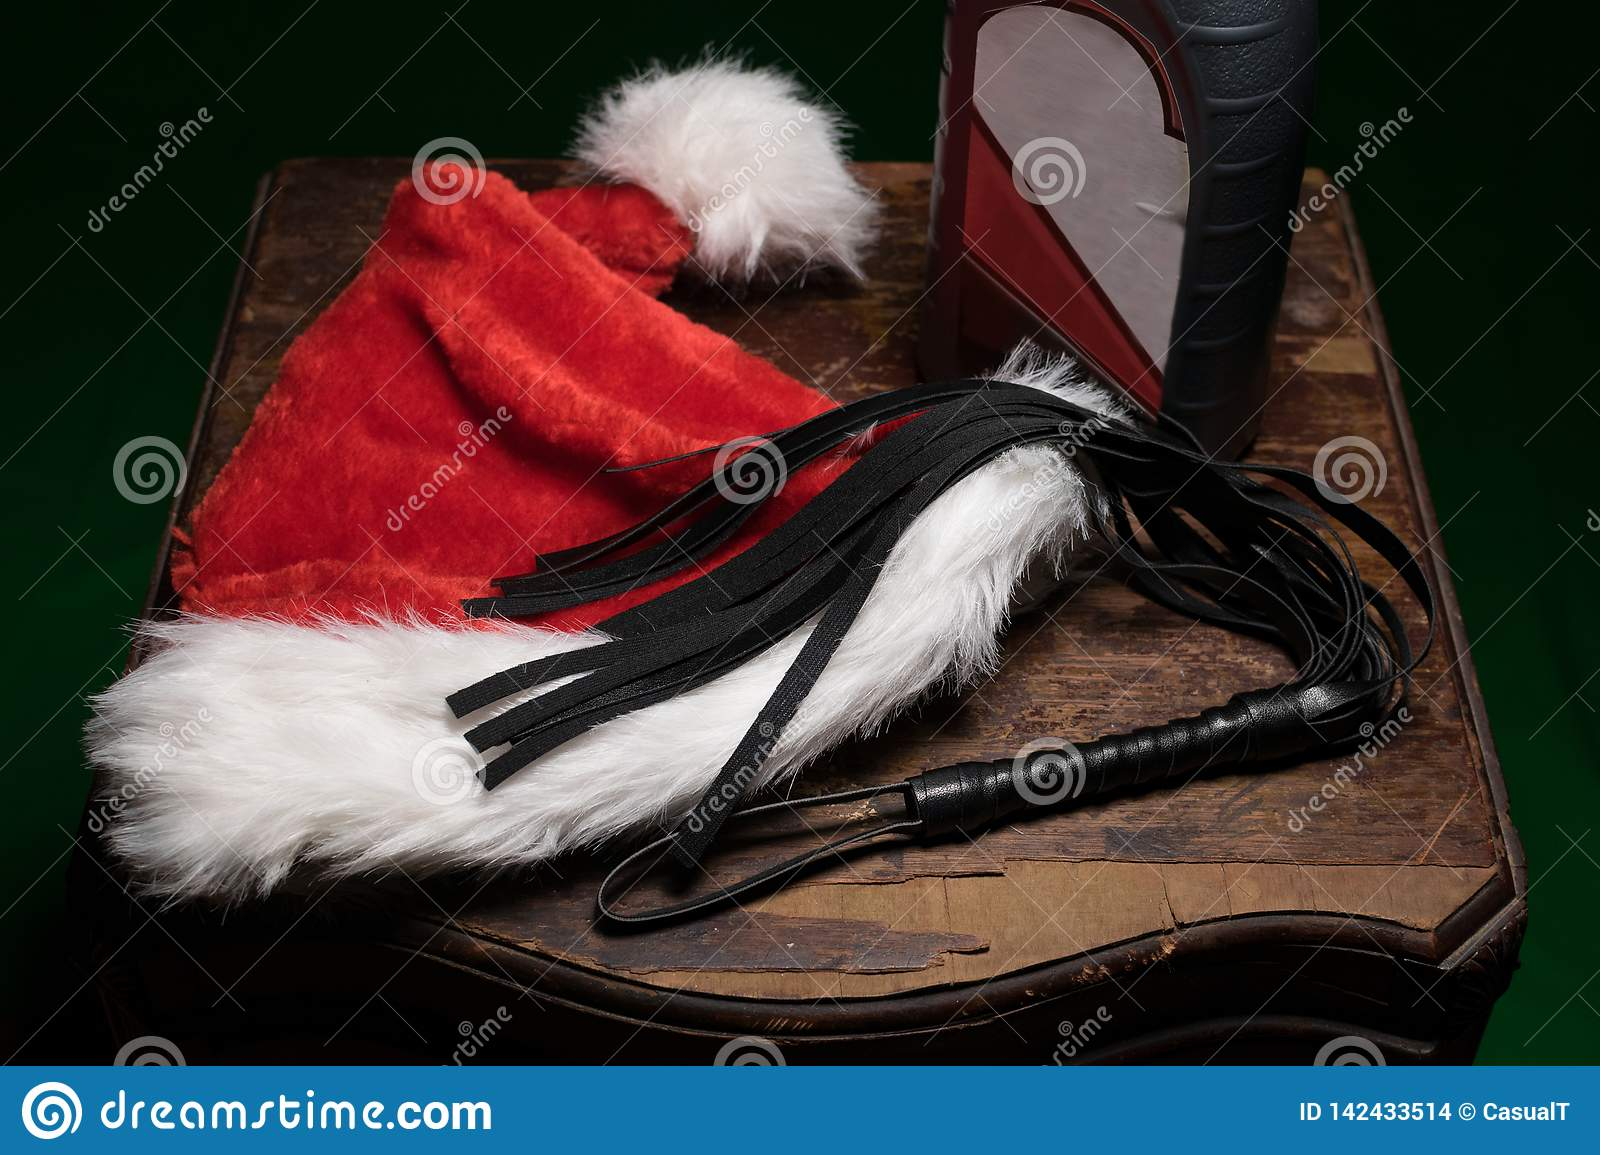 A fuzzy red and white Santa hat, a black whip, and a bottle of motor oil, on an old wodden table, spreading a special kind of